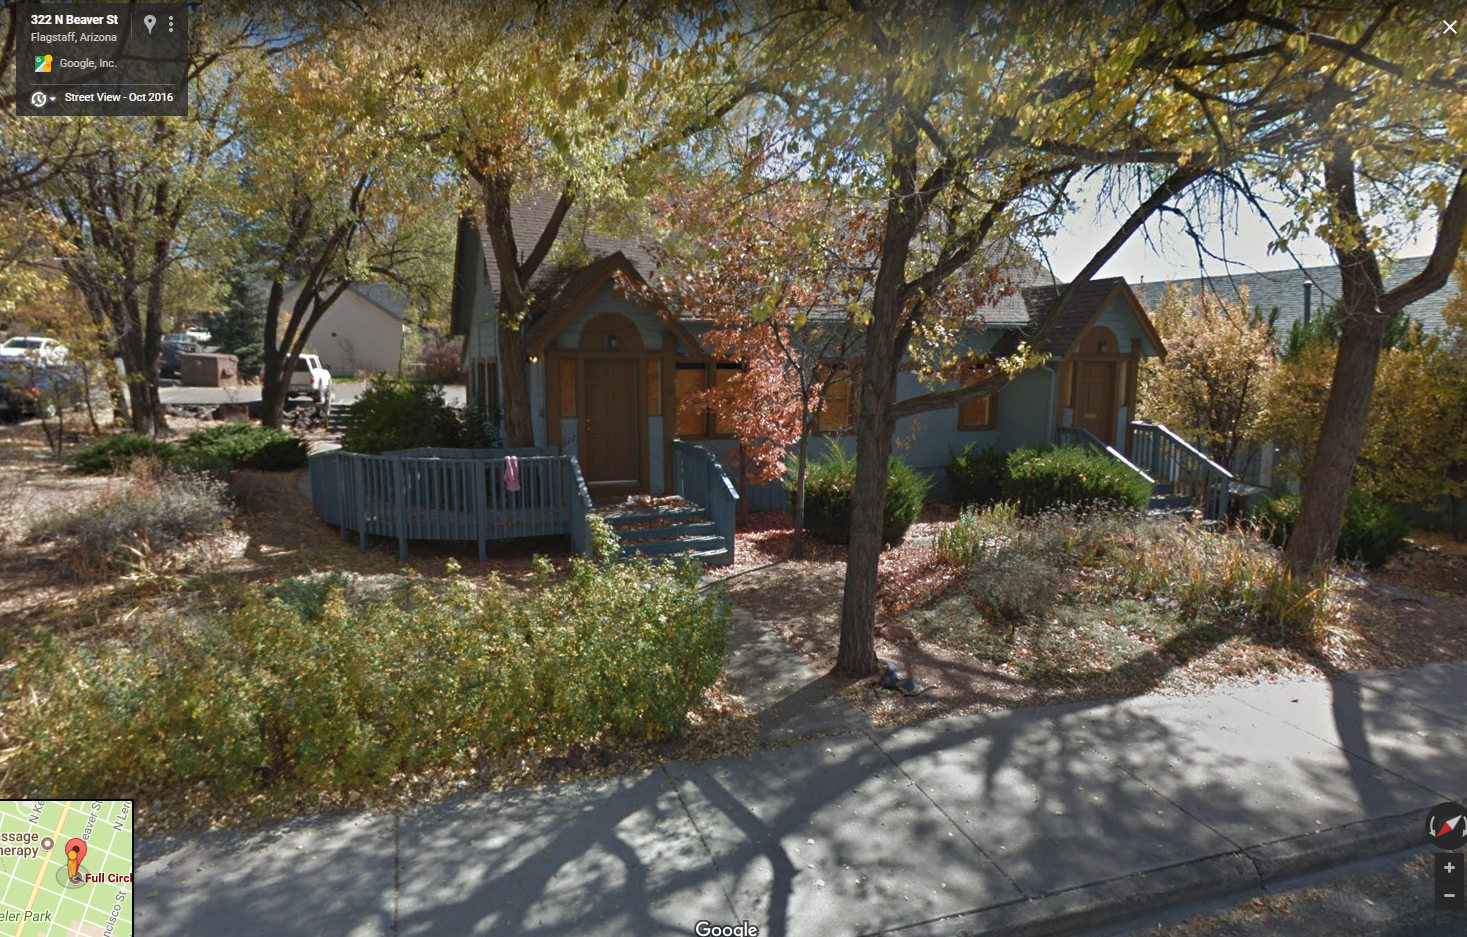 Duplex on the site previously, Google Street View 2018